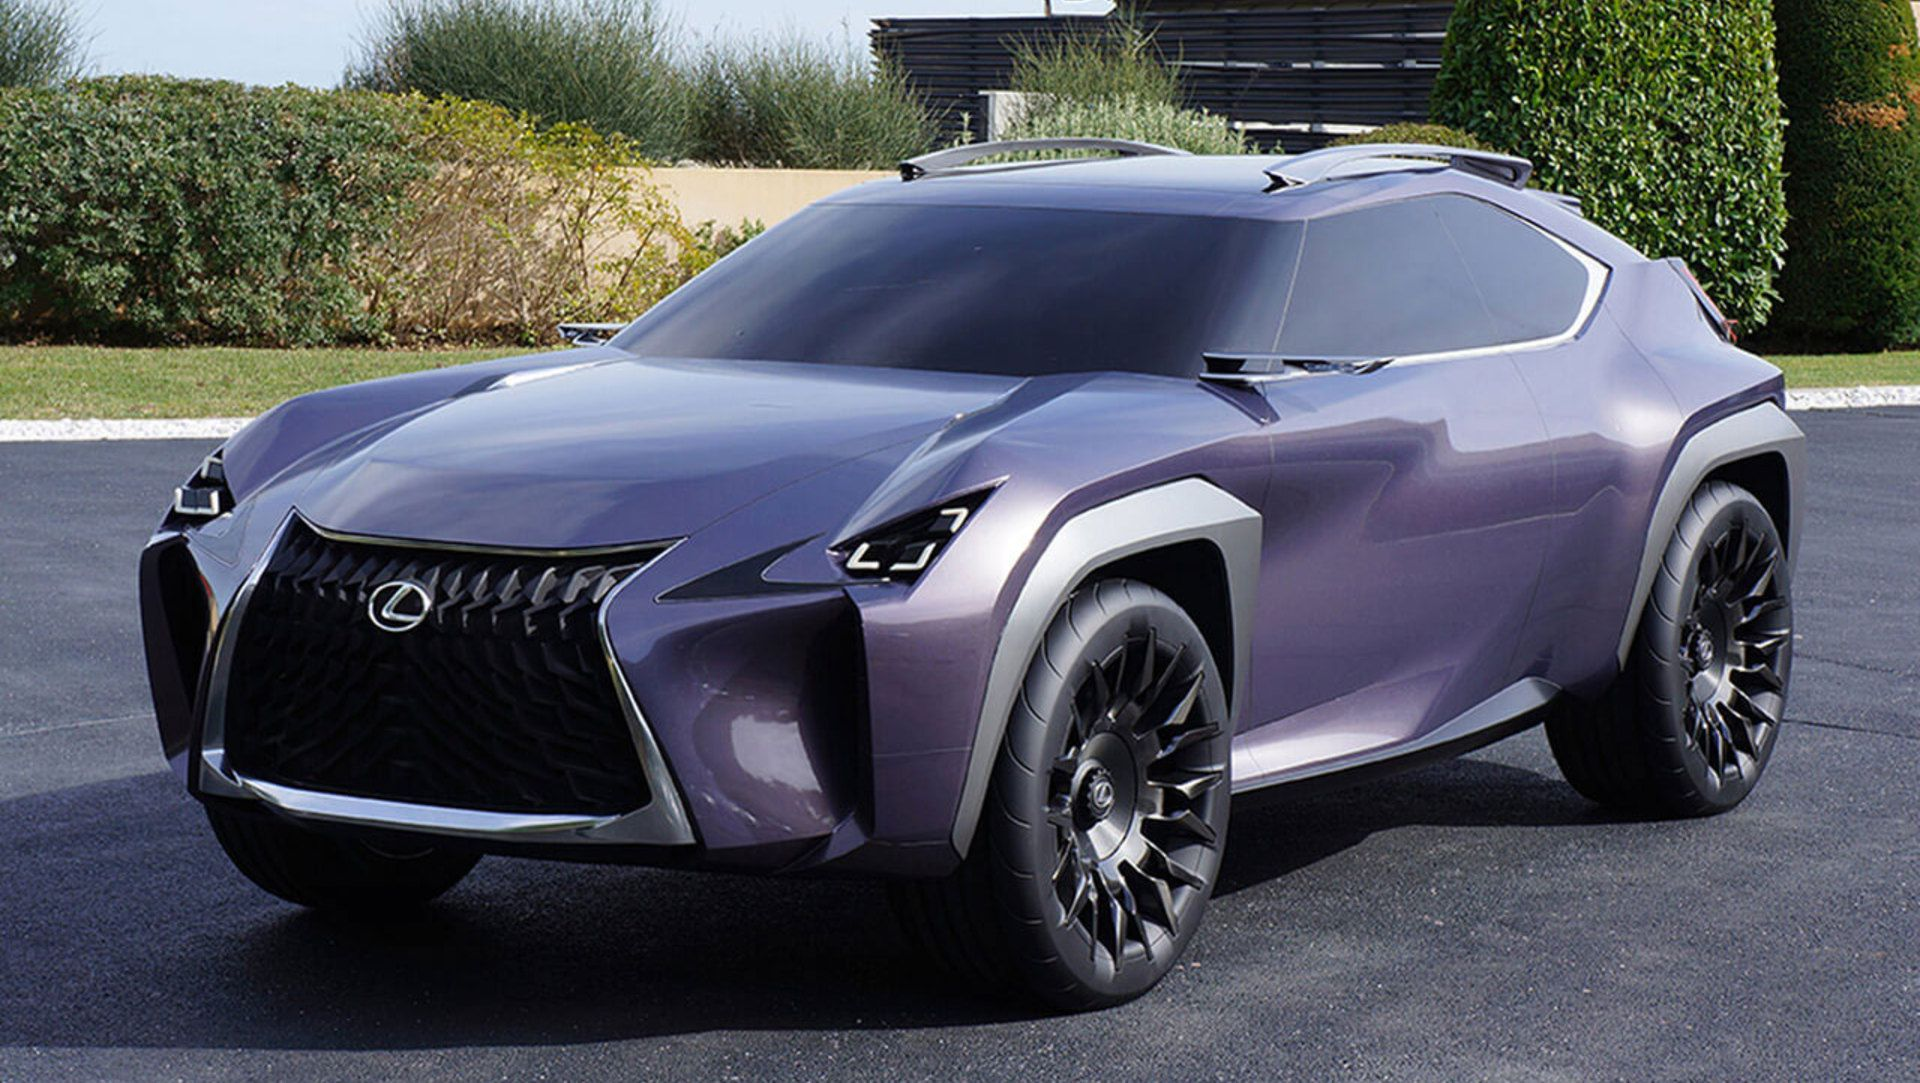 Video Designing The Lexus Ux Crossover Concept Auto Moto Japan Car Sketch